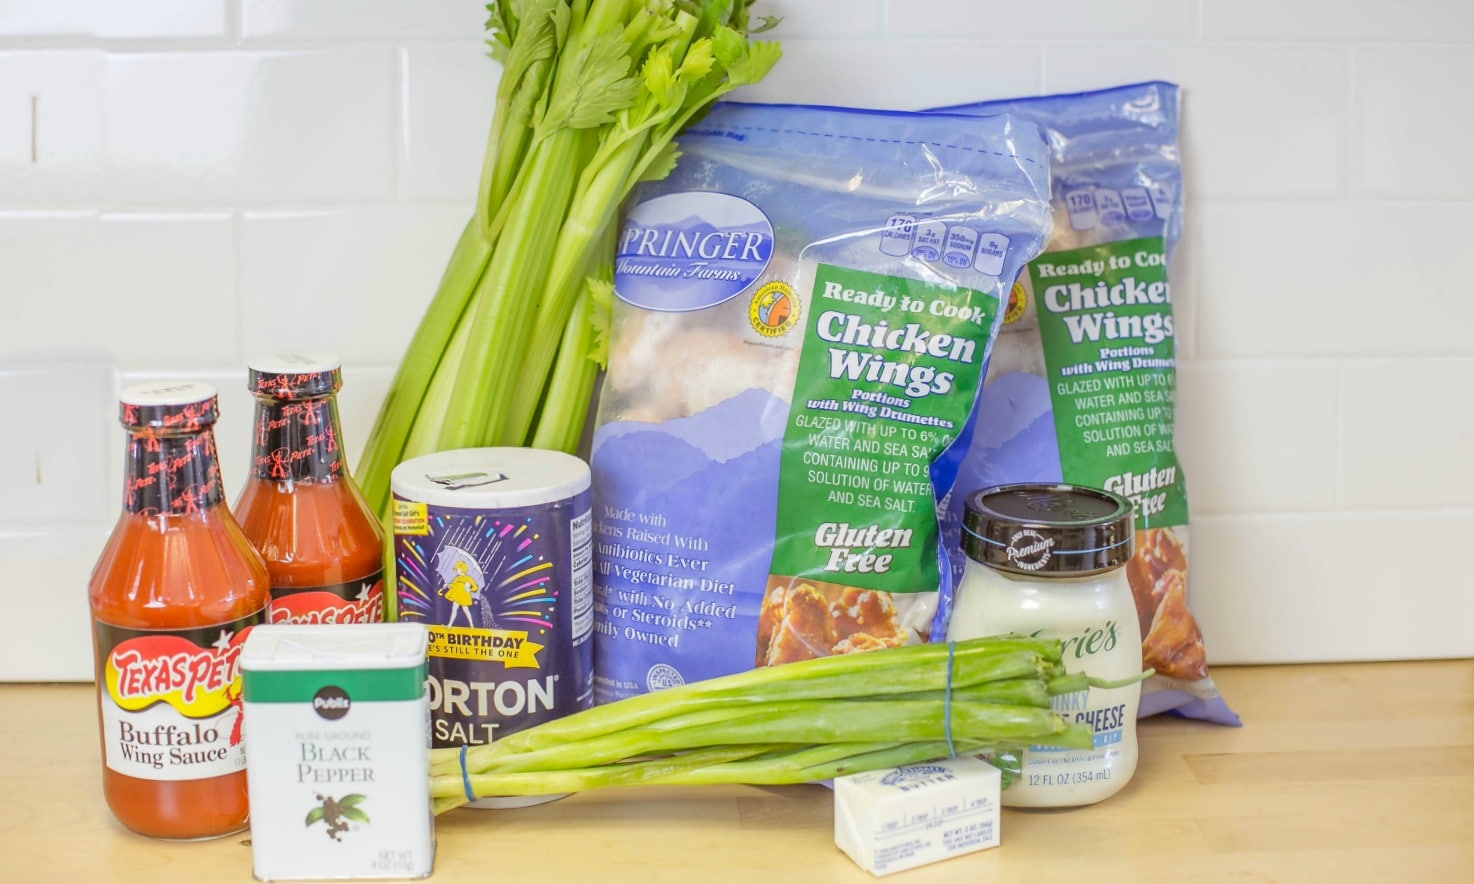 To make freezer to crock pot buffalo wings you need: chicken wings, celery, buffalo sauce, salt, pepper, butter and blue cheese dressing.